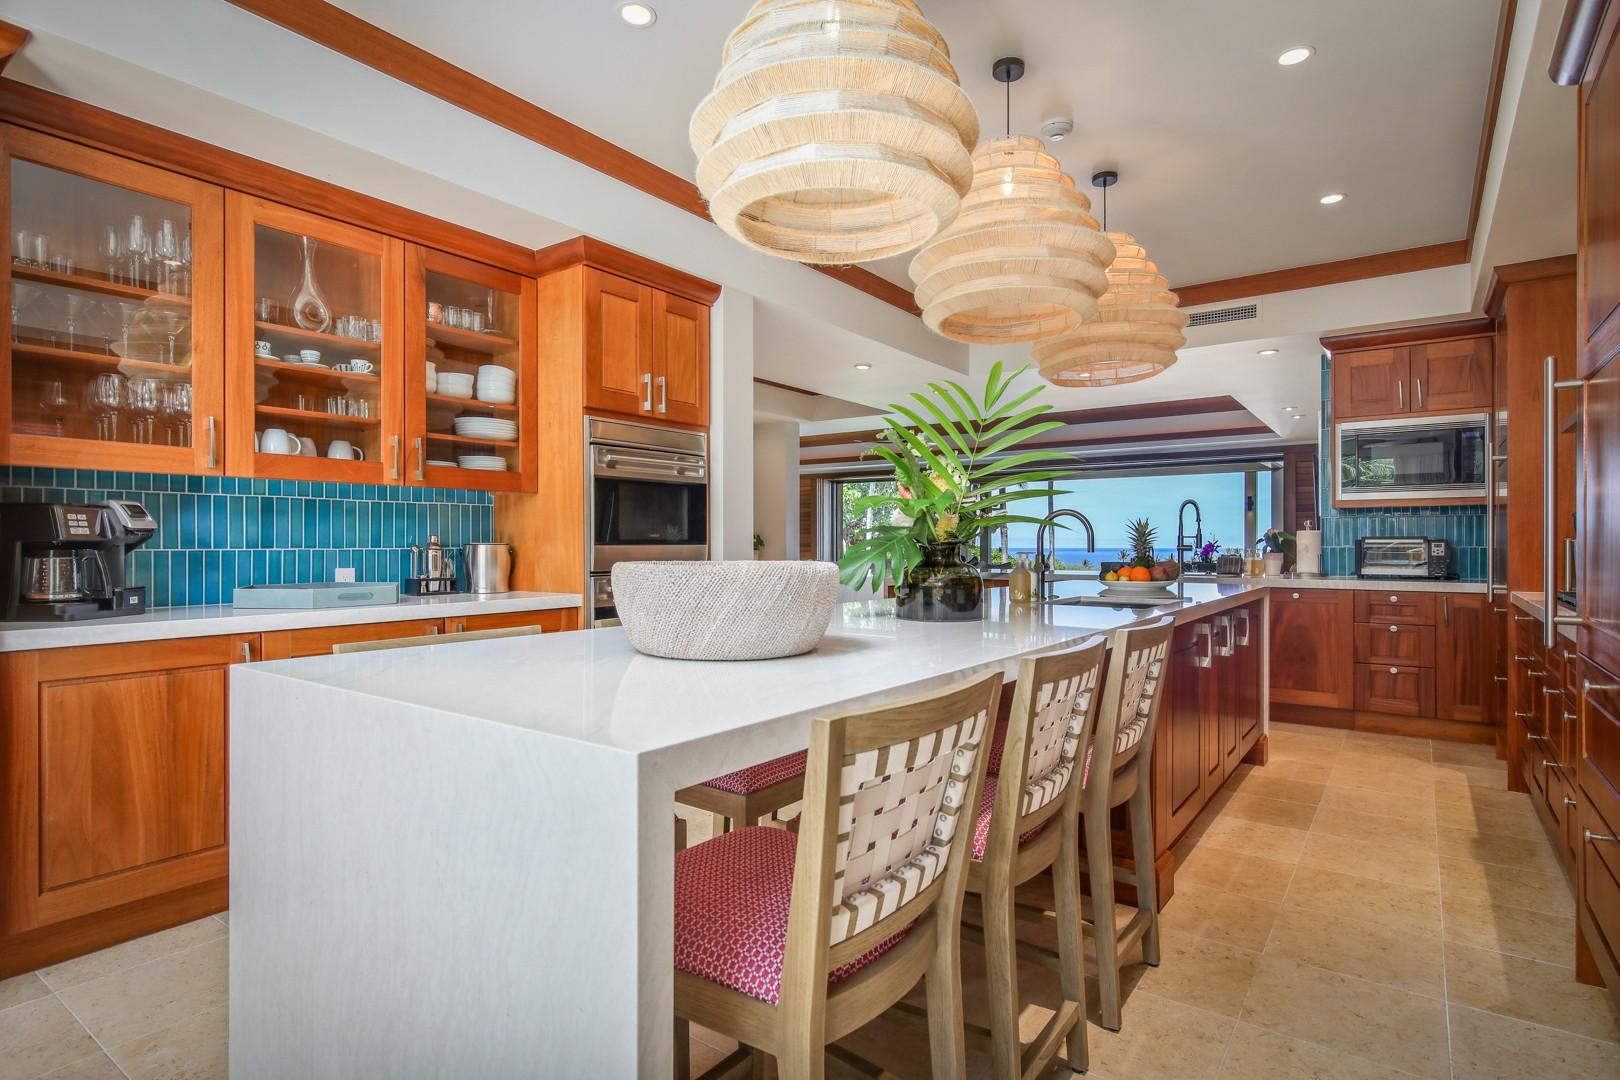 Spacious open concept kitchen with center island and bar seating.